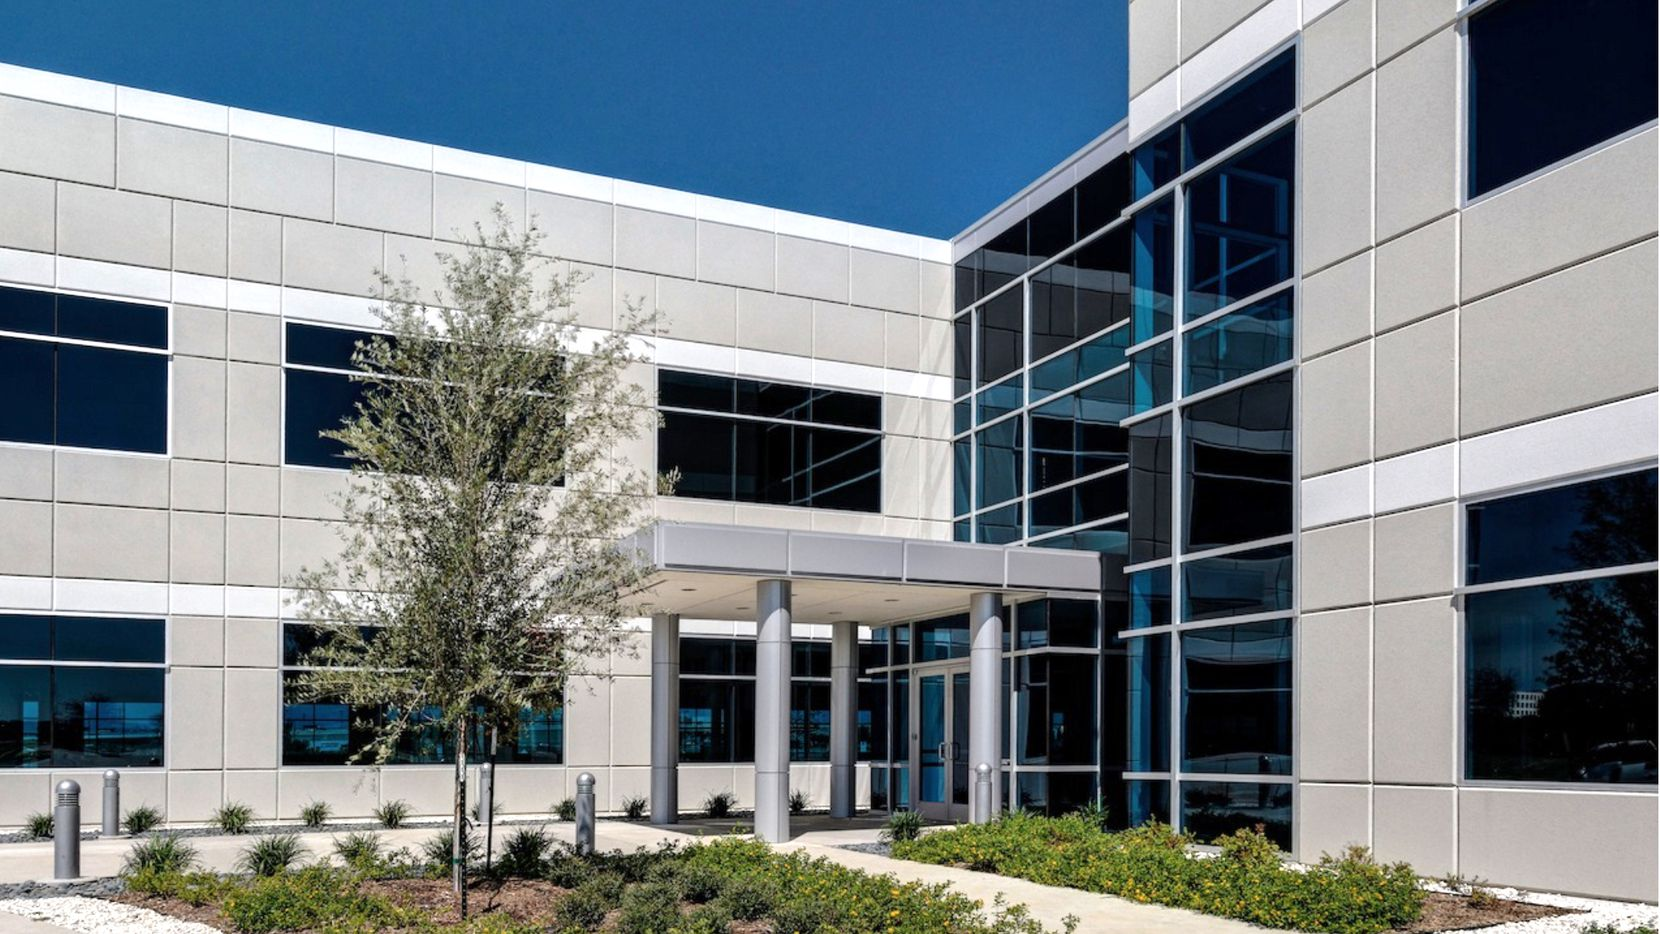 IT services firm Cognizant will bring hundreds of workers to the Dominion Legacy office center in Plano.